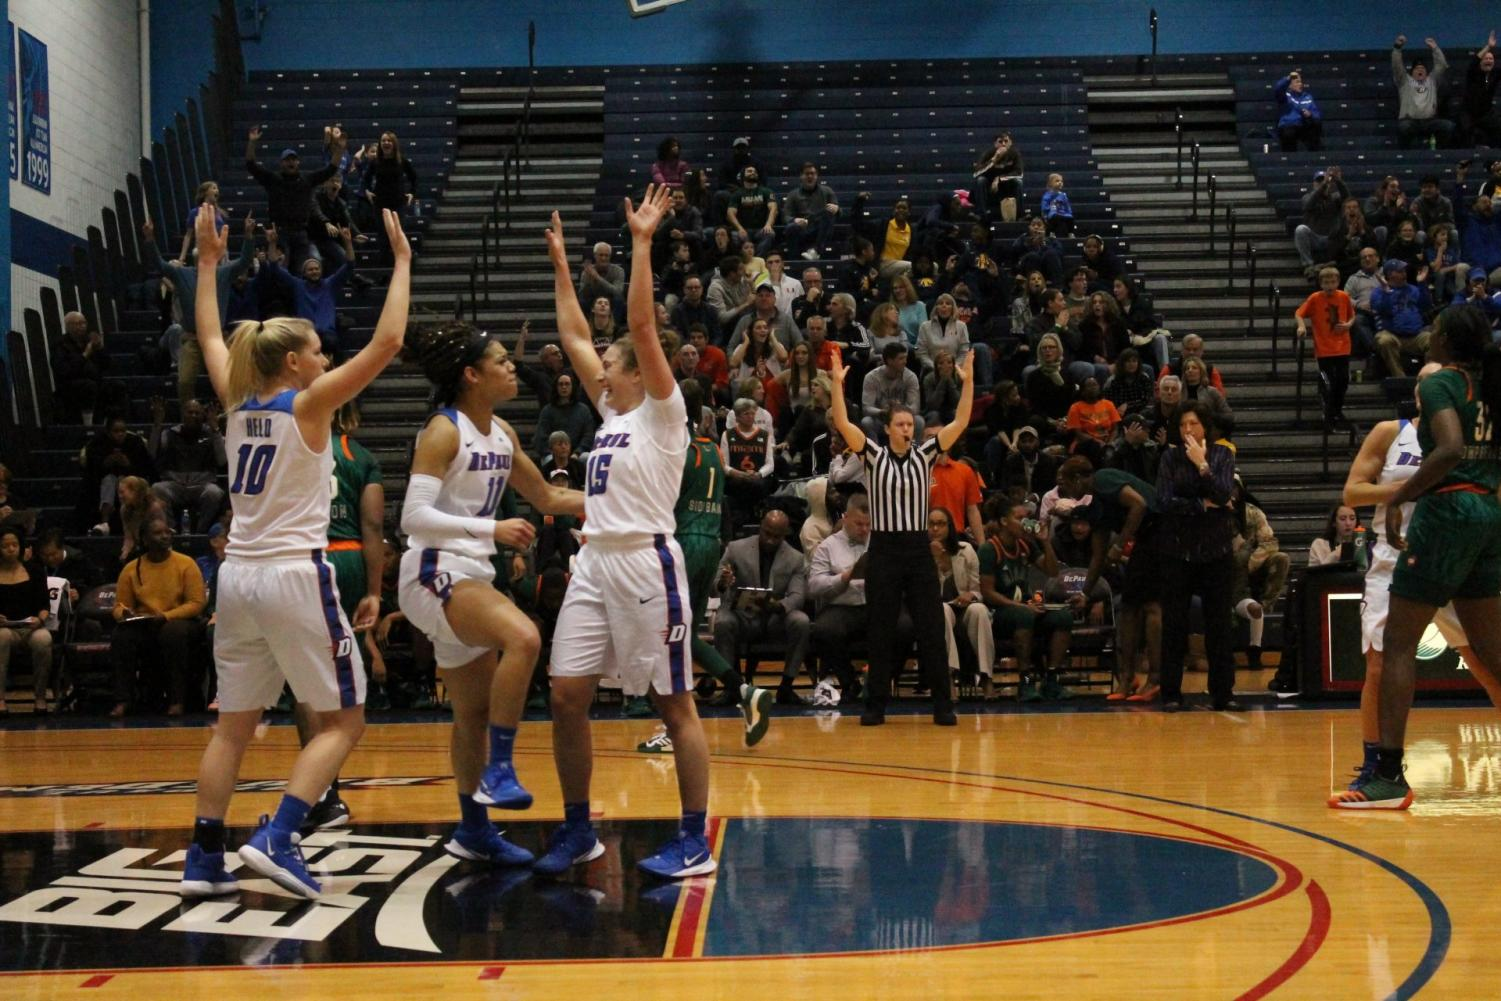 DePaul celebrates after beating Miami in the Maggie Dixon Classic in November. Miami was one of five teams who were ranked or receiving votes when DePaul played them.